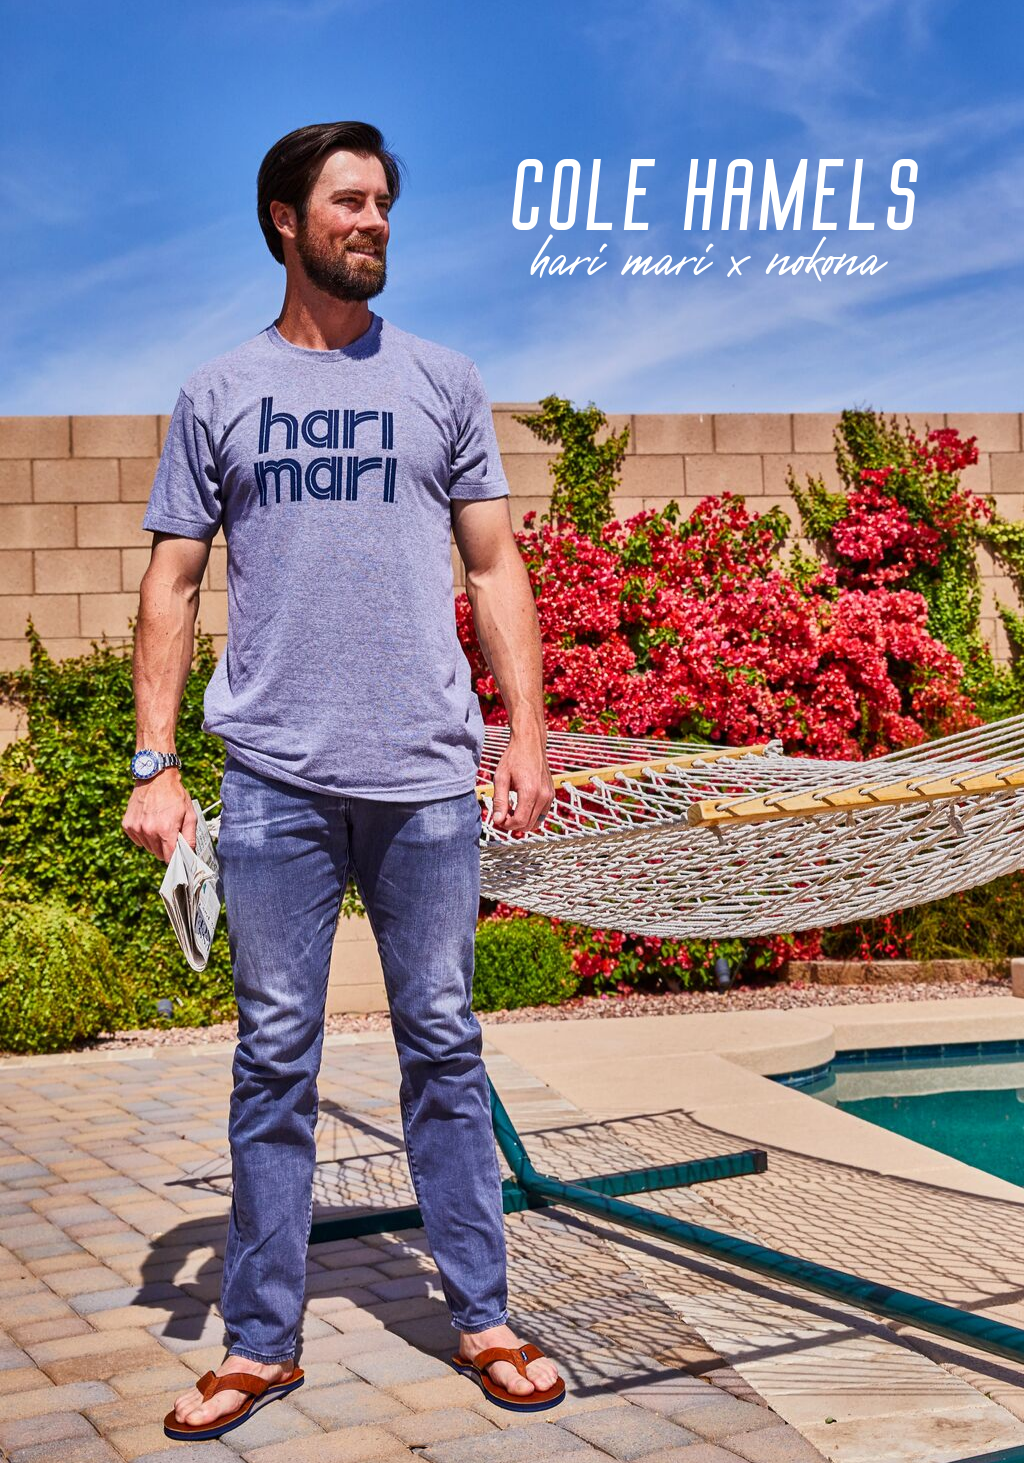 Cole Hamels for hari mari x nokona